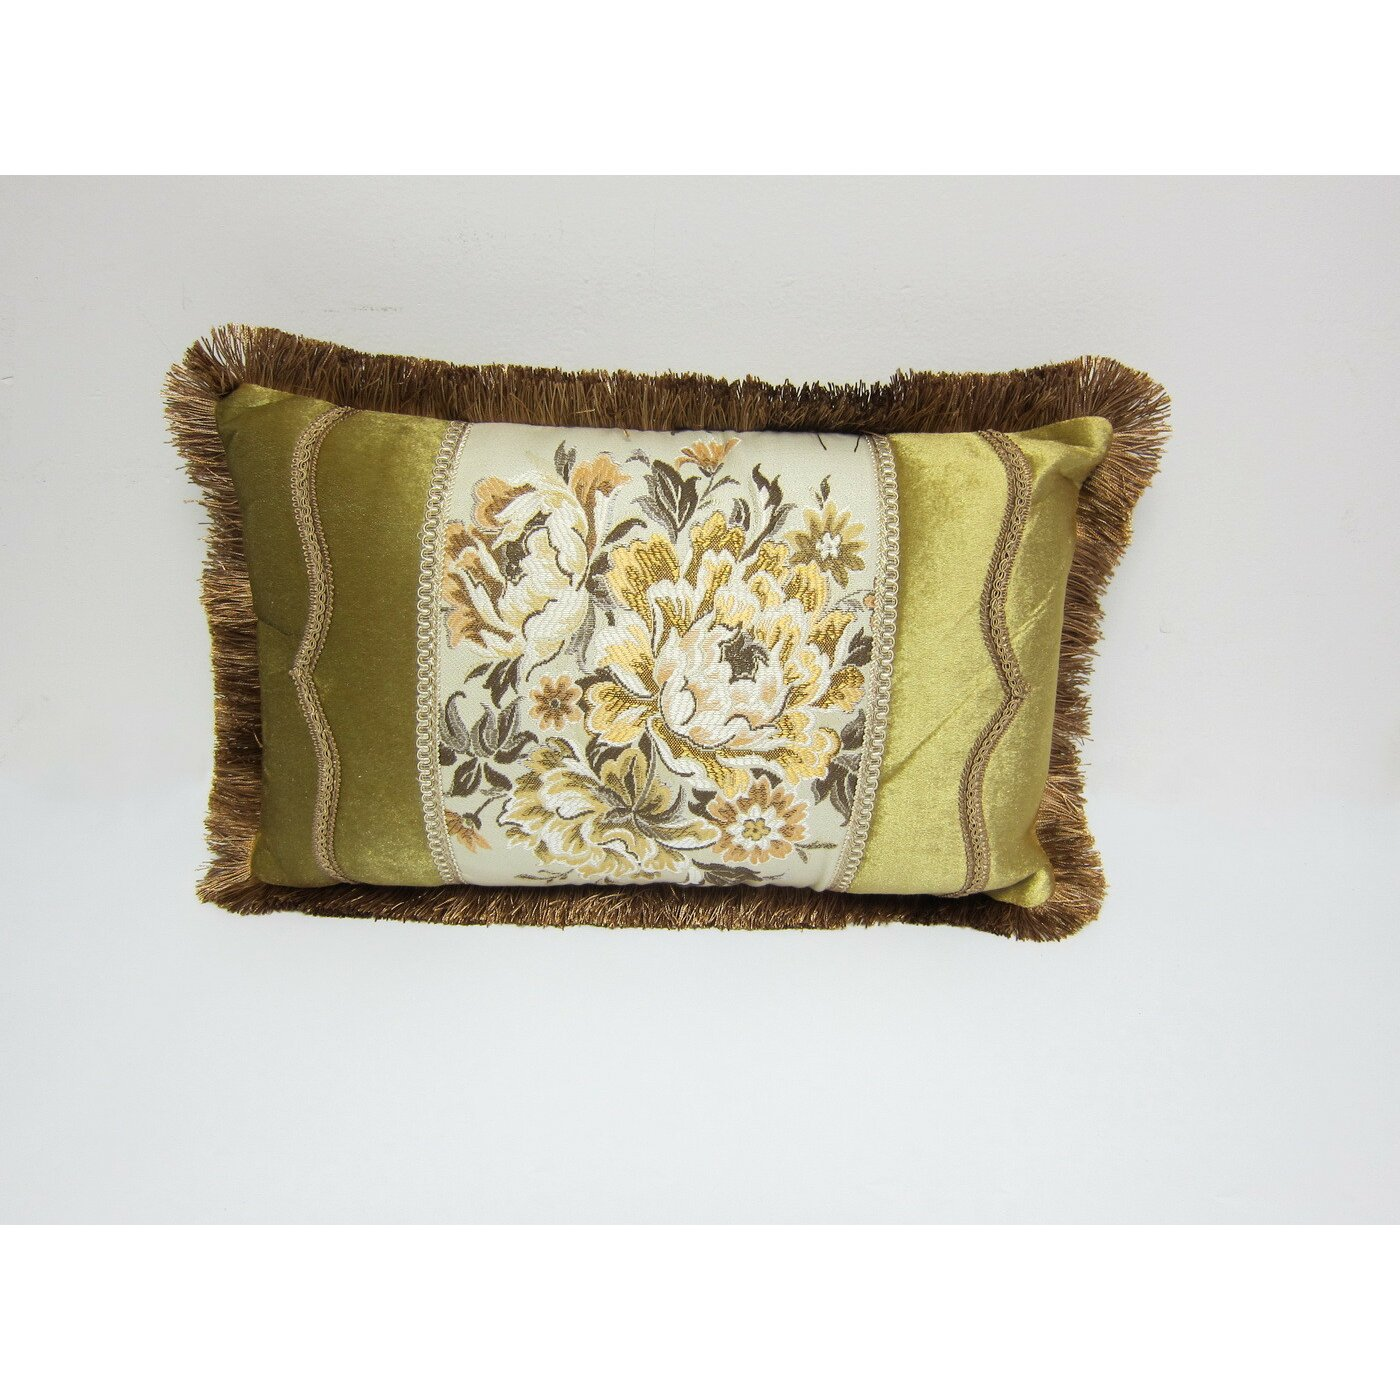 Wayfair Decorative Pillow Covers : AirDoDo European Floral Decorative Lumbar Pillow Cover Wayfair